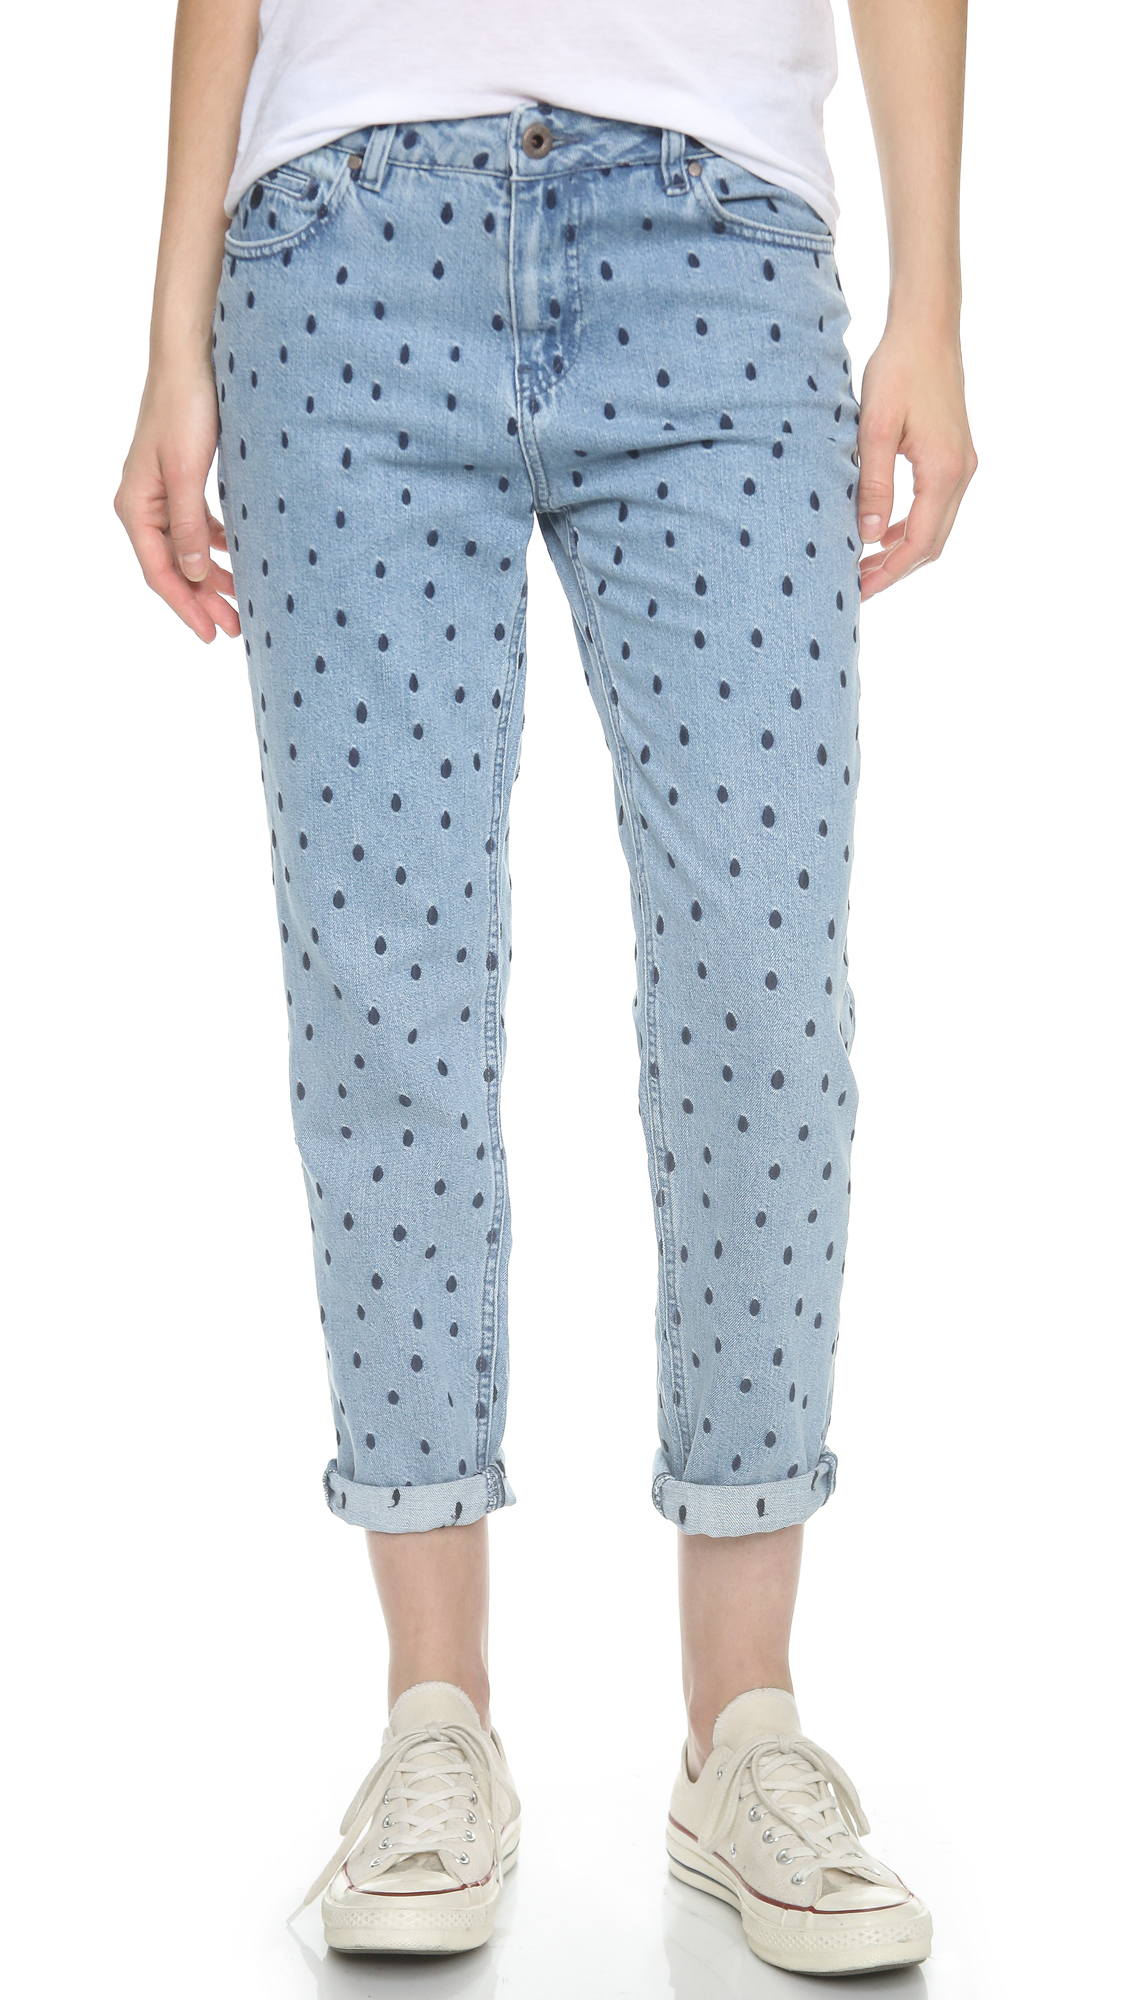 Blue jeans with a wide leg style, polka dot print and high waisted fit.